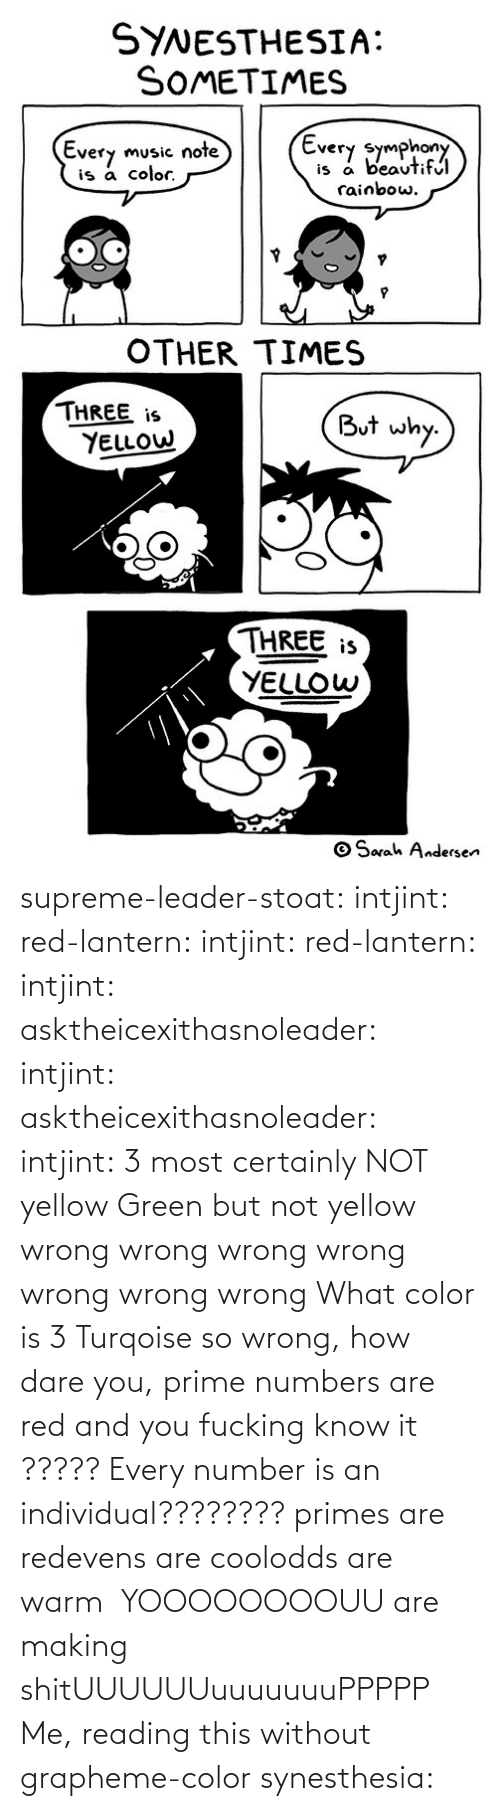 Supreme: supreme-leader-stoat: intjint:  red-lantern:  intjint:  red-lantern:  intjint:  asktheicexithasnoleader:  intjint:   asktheicexithasnoleader:  intjint:  3 most certainly NOT yellow   Green but not yellow  wrong wrong wrong wrong wrong wrong wrong    What color is 3  Turqoise  so wrong, how dare you, prime numbers are red and you fucking know it   ????? Every number is an individual????????  primes are redevens are coolodds are warm   YOOOOOOOOUU are making shitUUUUUUuuuuuuuPPPPP  Me, reading this without grapheme-color synesthesia: